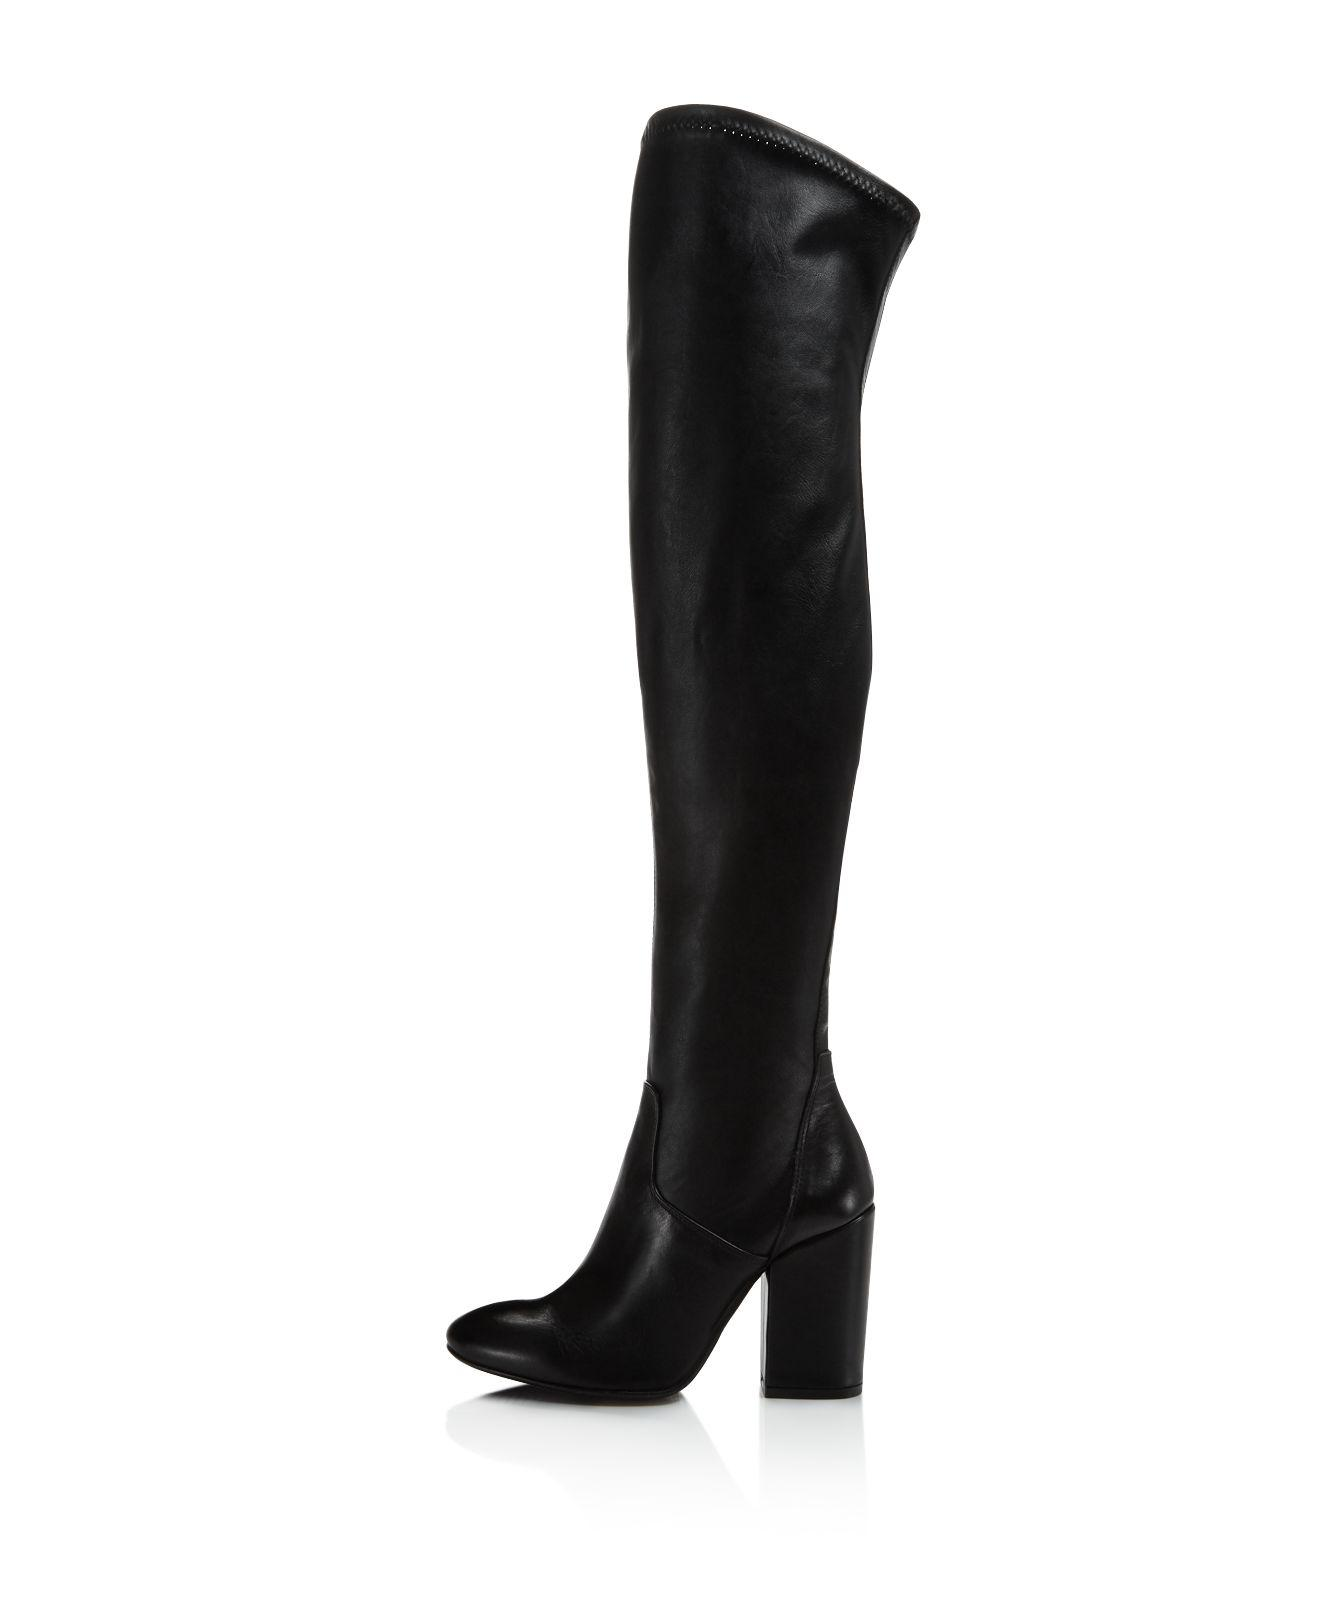 Charles David Clarice Over the Knee Boot(Women's) -Truffle Stretch Microsuede Finishline Online Free Shipping Footlocker Finishline VT0zi